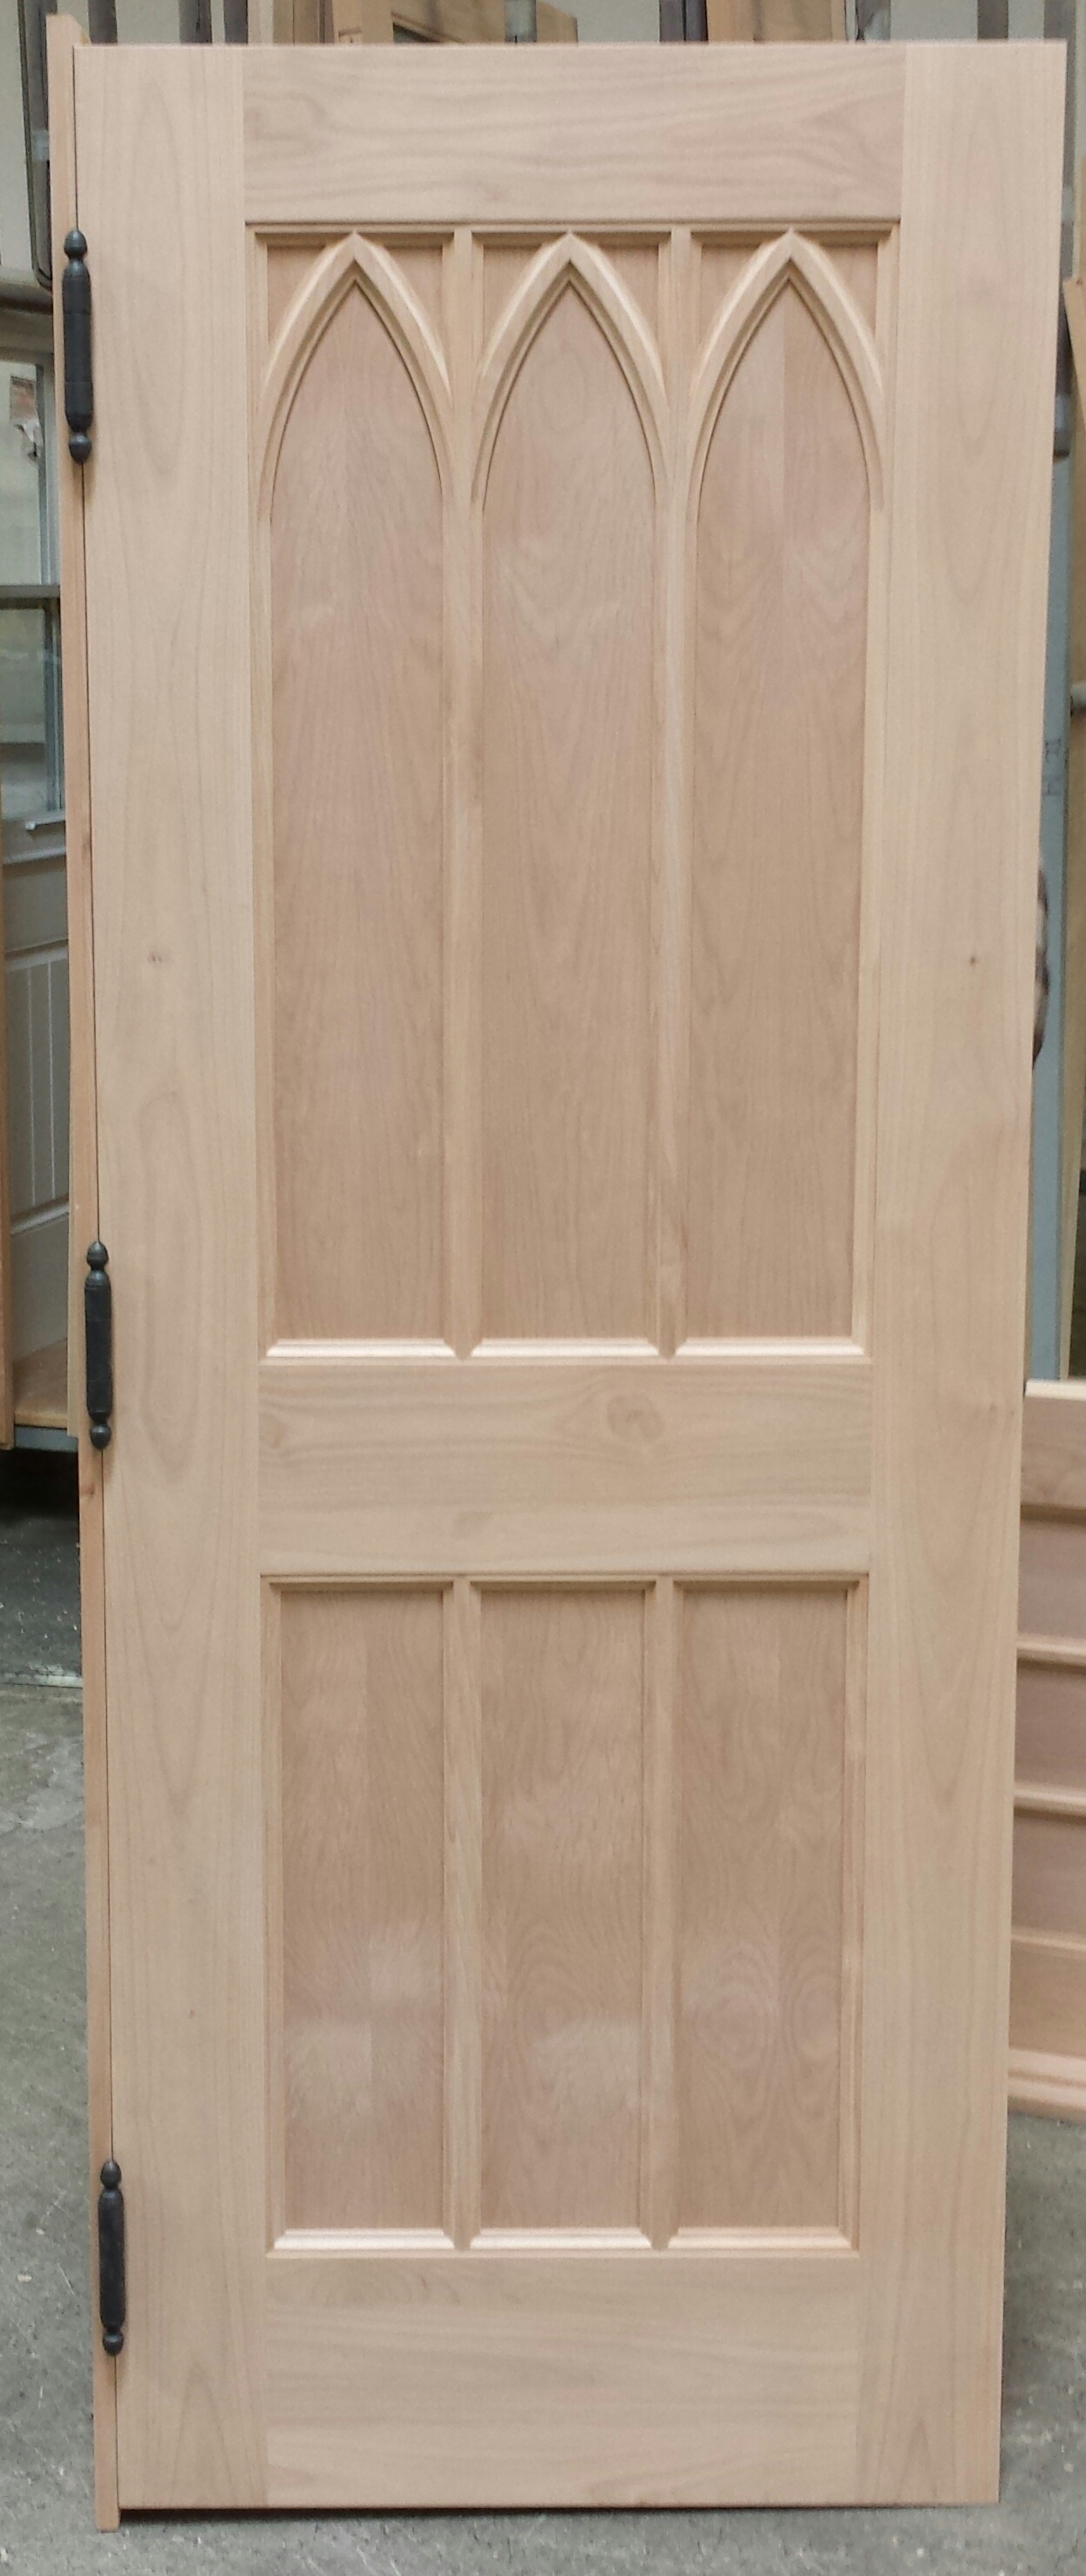 Matching historic doors for a remodel